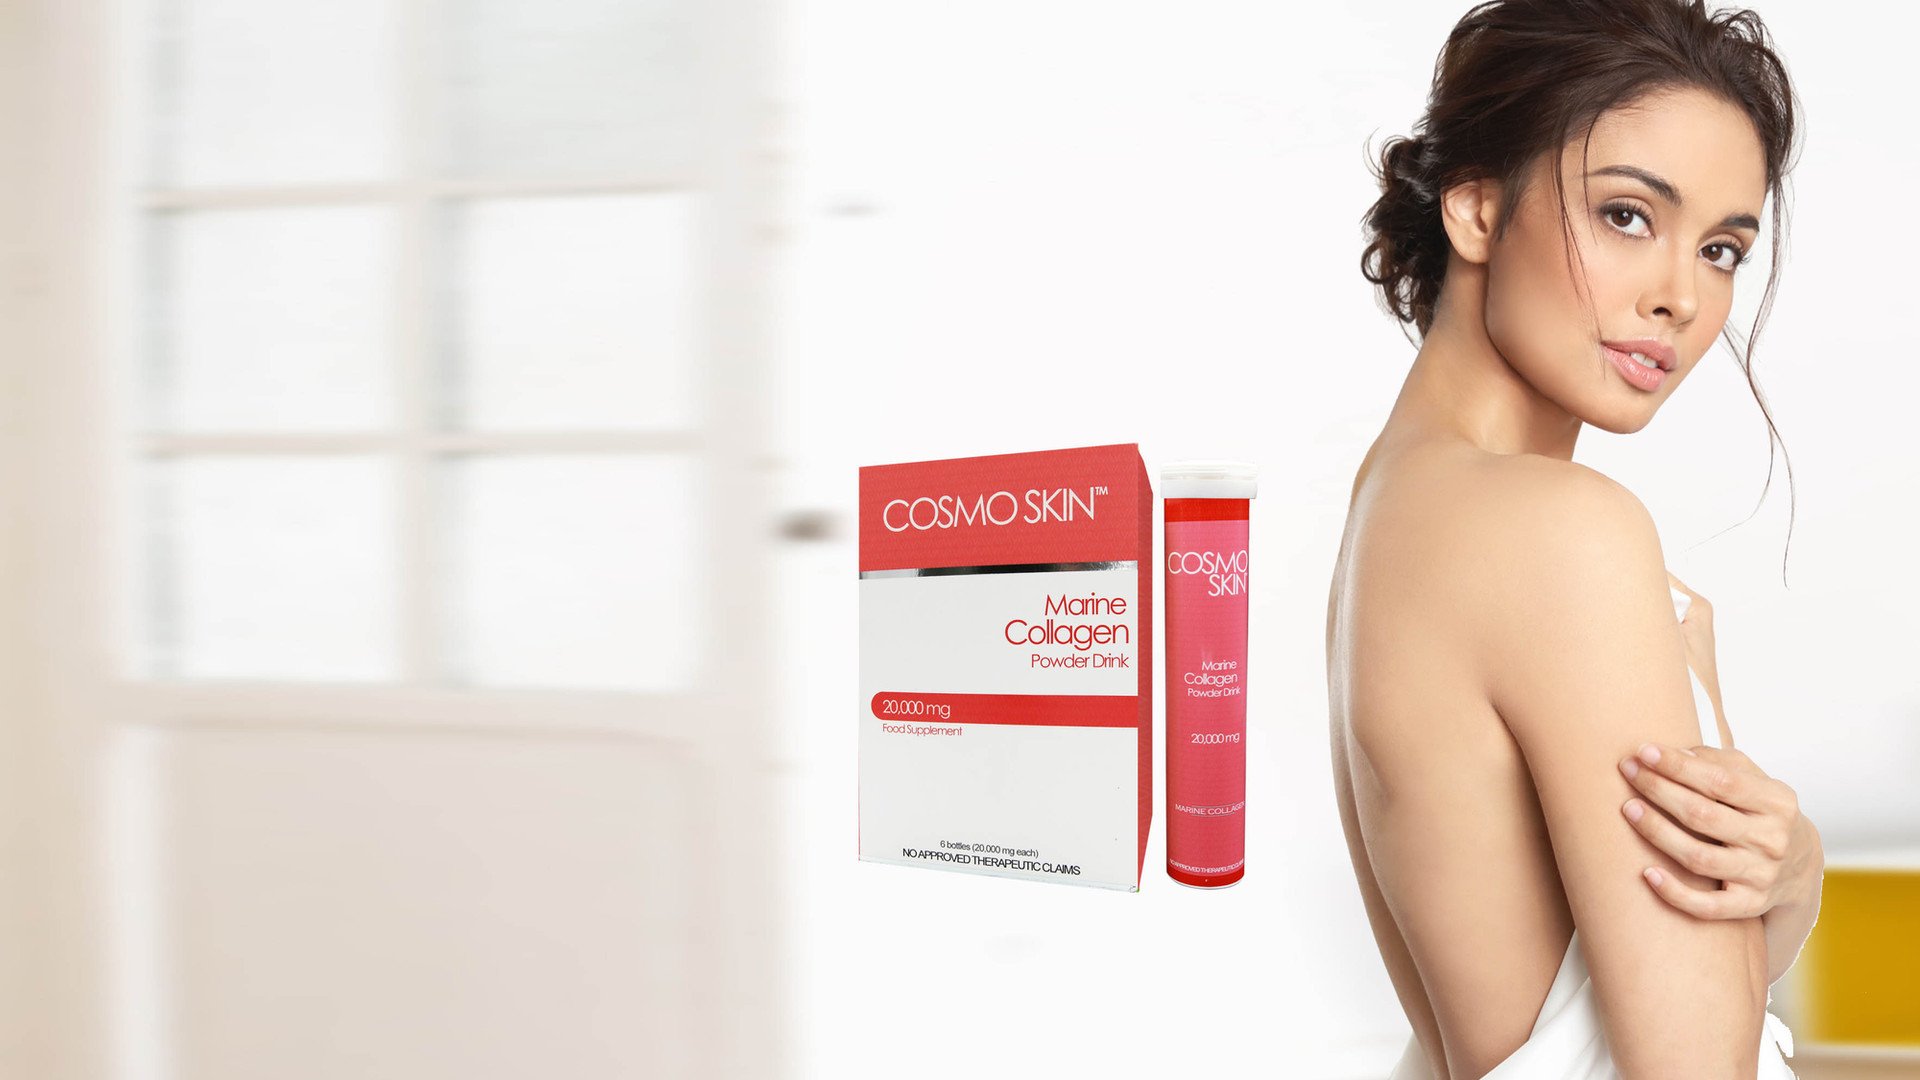 Megan Young for CosmoSkin